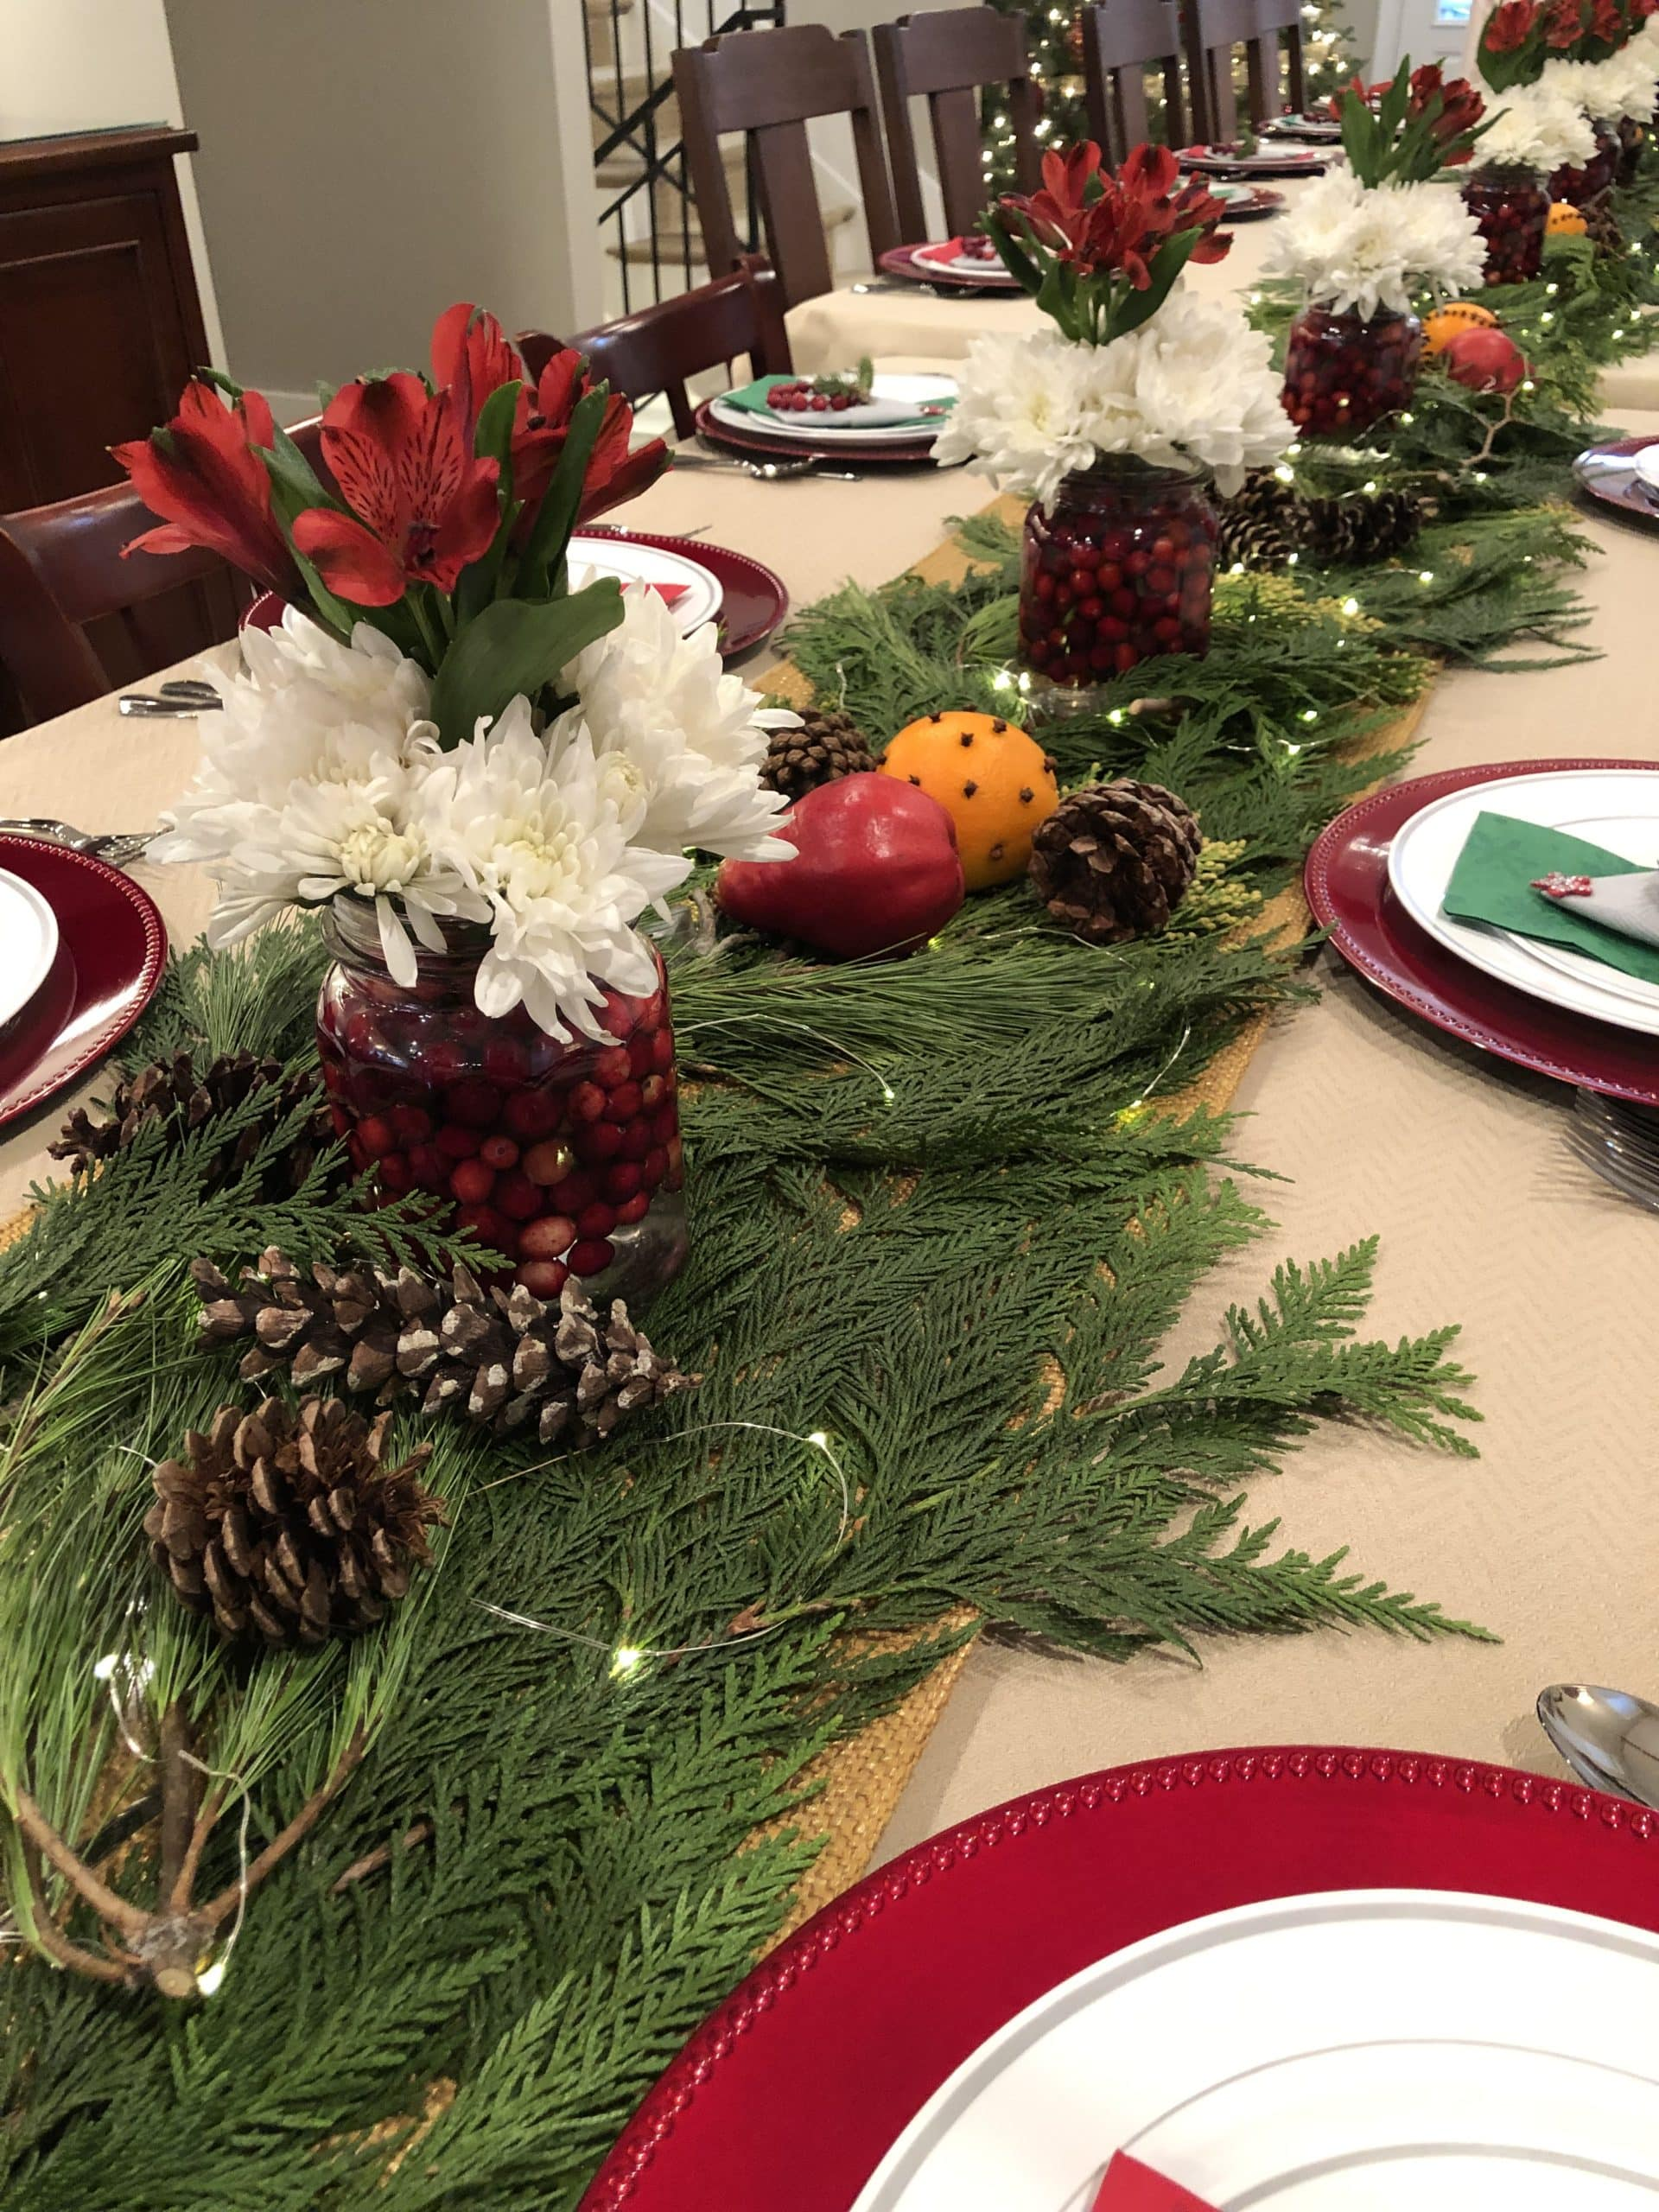 Table set with red and white plates with holiday greenery and flowers in the center